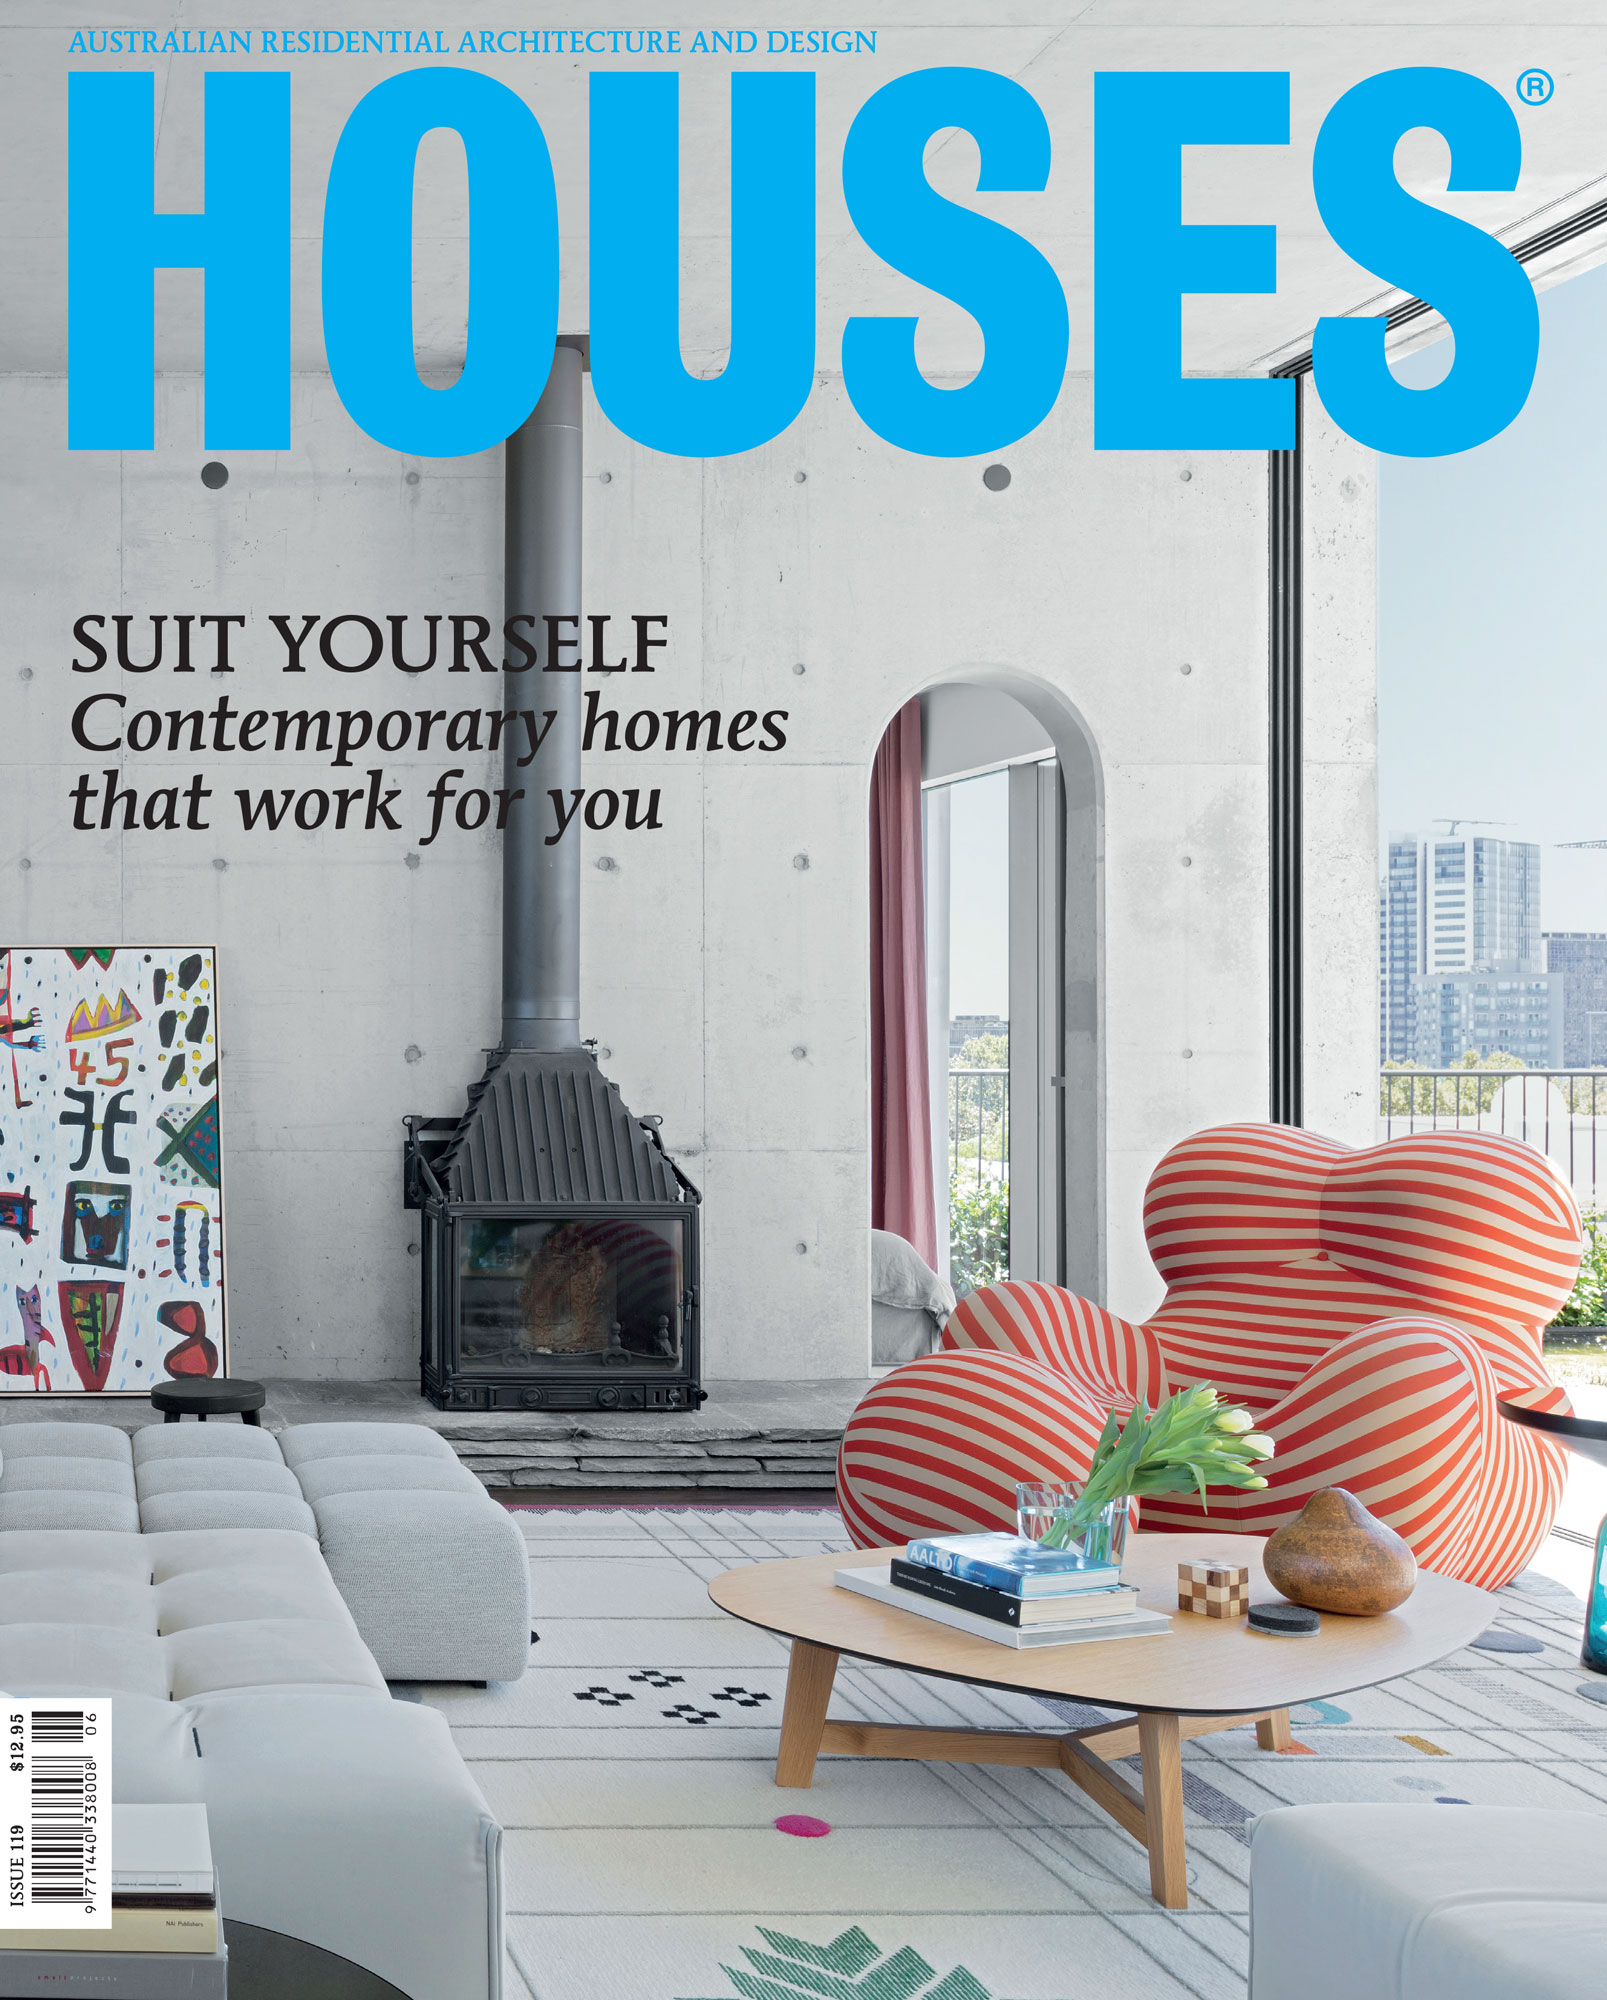 Published in Houses, Australia's leading residential architecture magazine for designers and their clients - http://architectureau.com/magazines/houses/